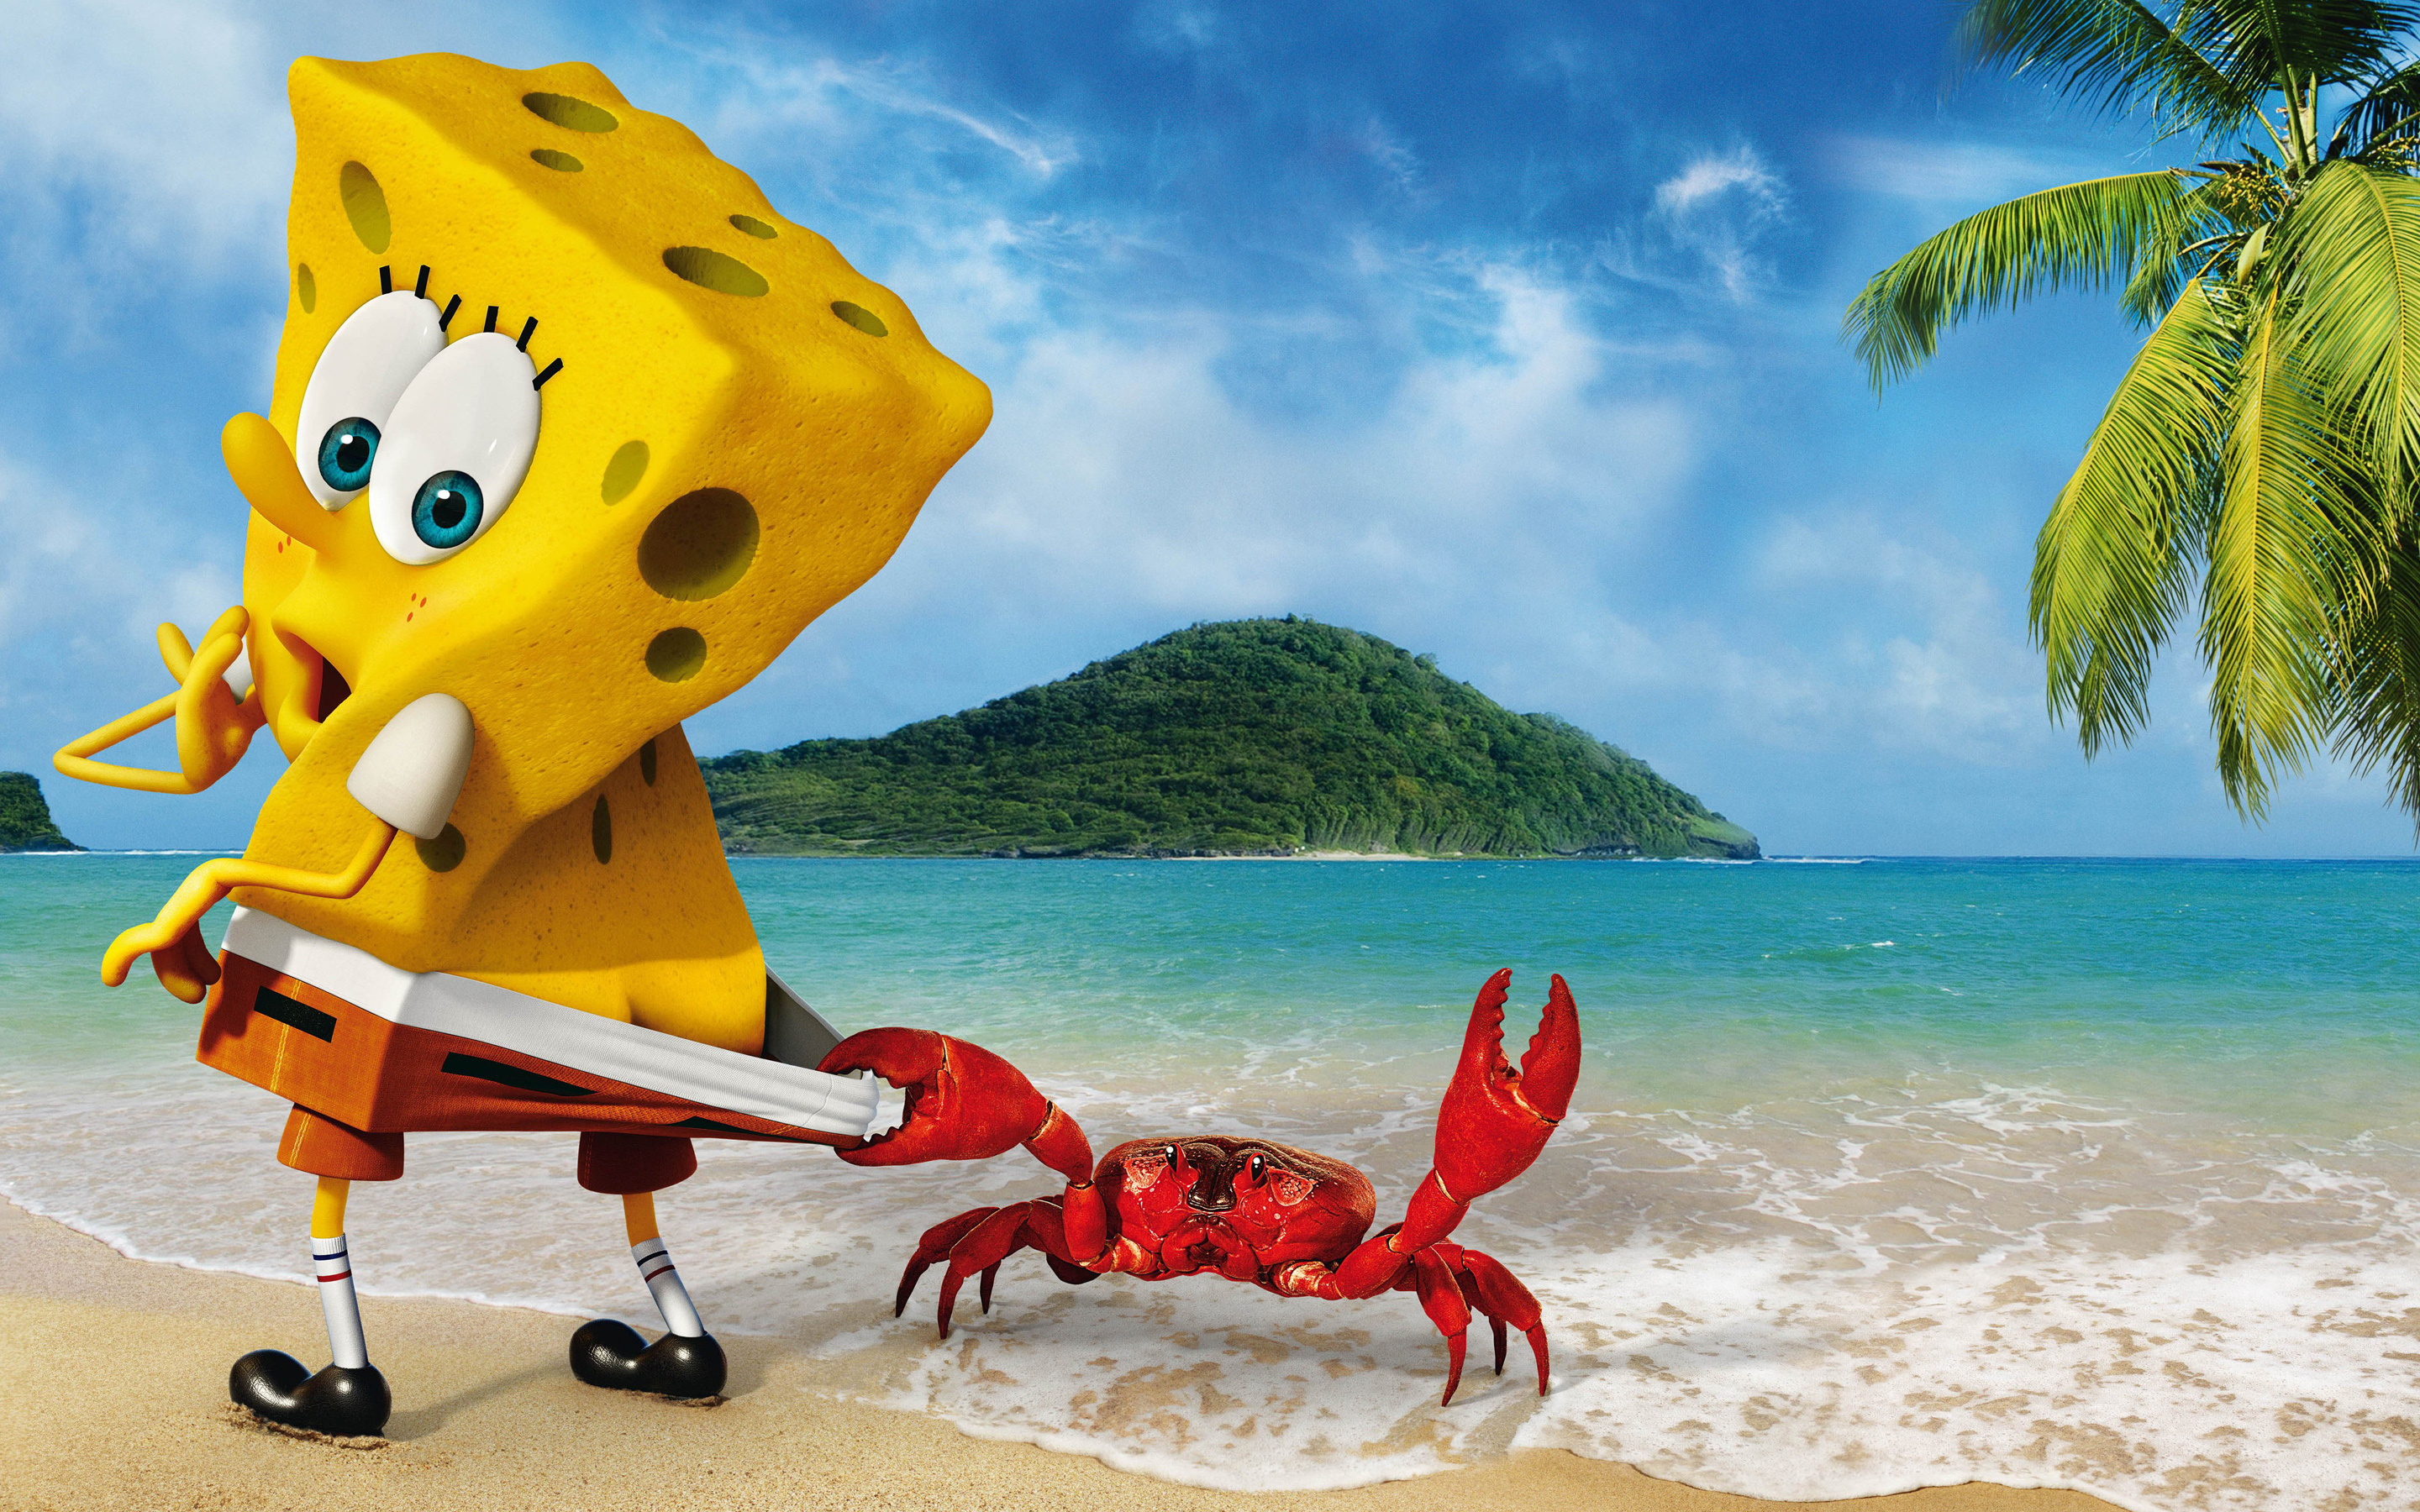 spongebob widescreen hd wallpaper 59869